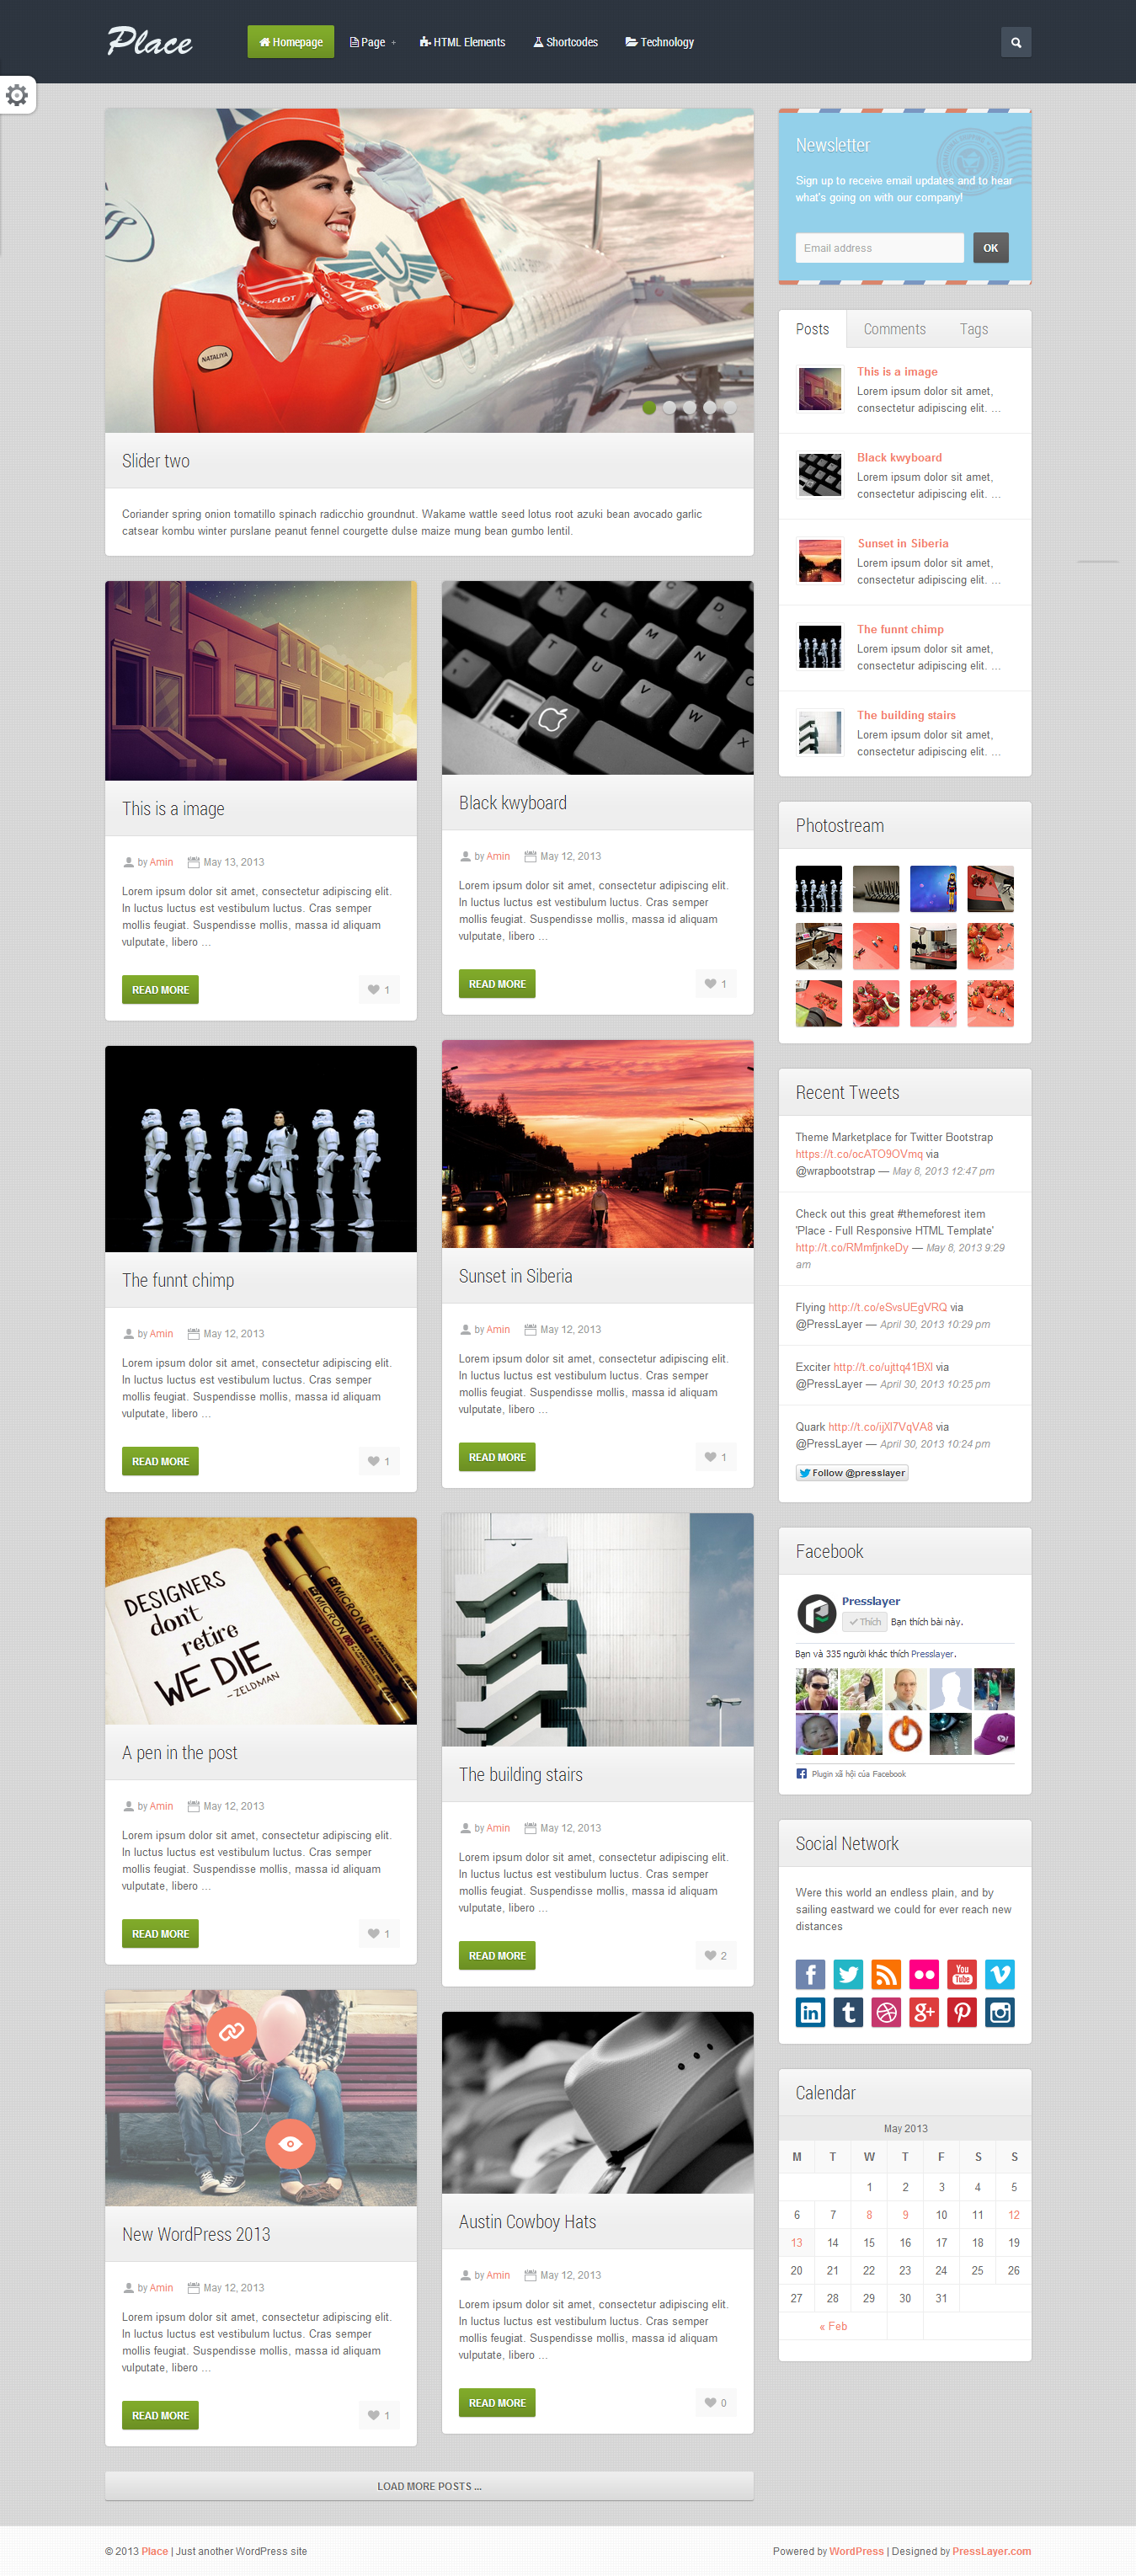 Place - Responsive Blogging WordPress Theme - 02_Homepage.png Screenshot of homepage